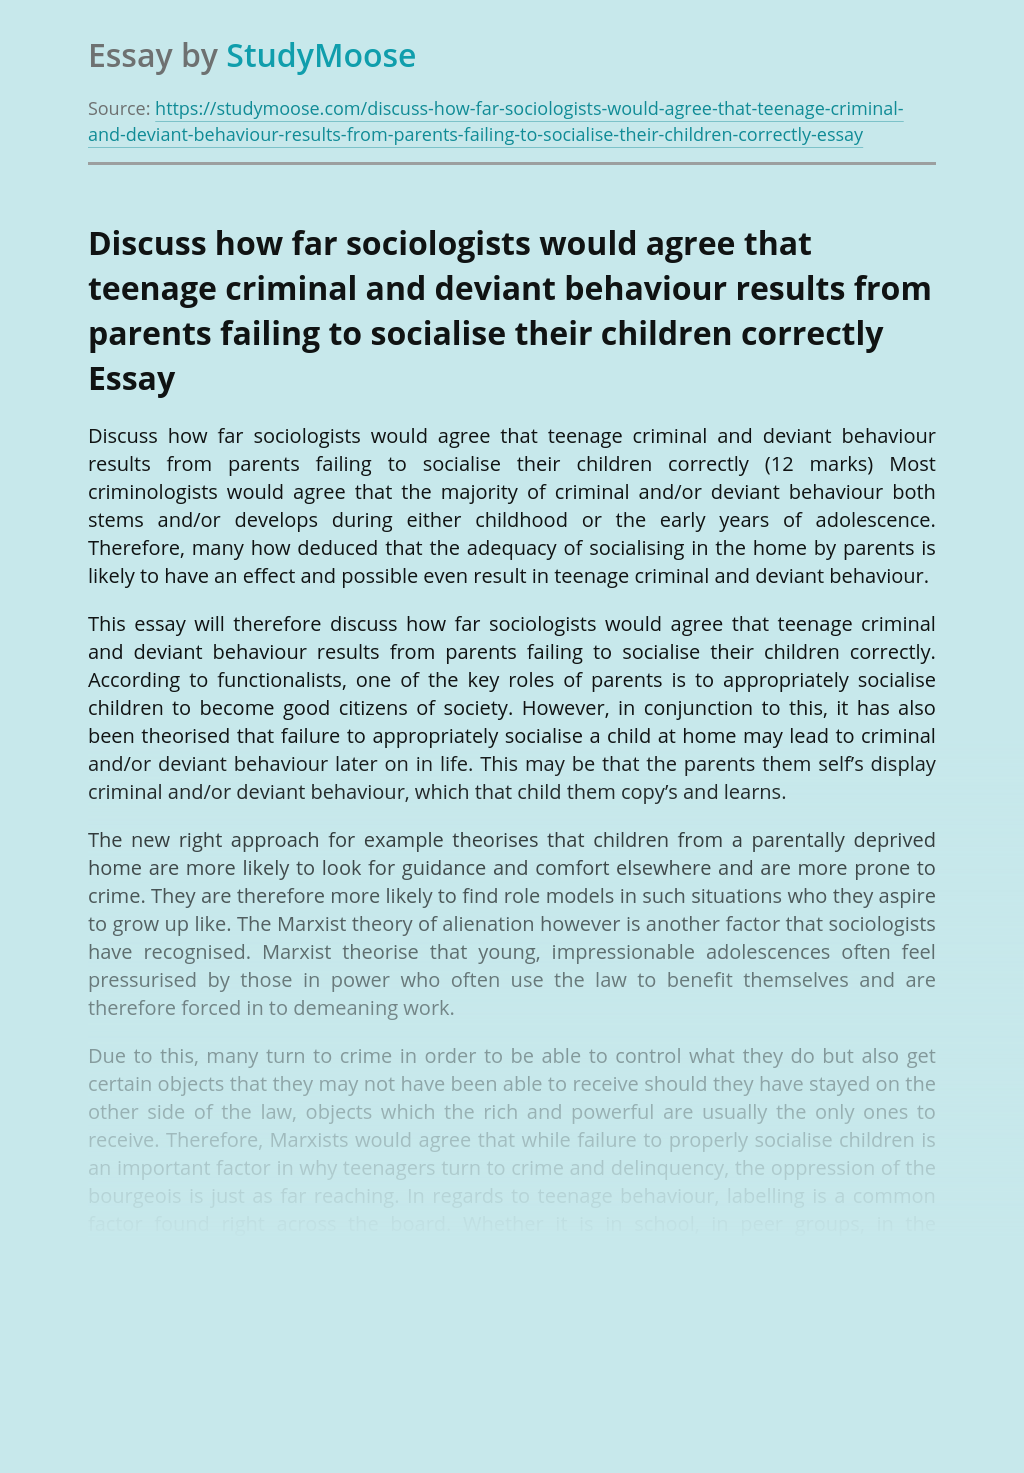 Discuss how far sociologists would agree that teenage criminal and deviant behaviour results from parents failing to socialise their children correctly